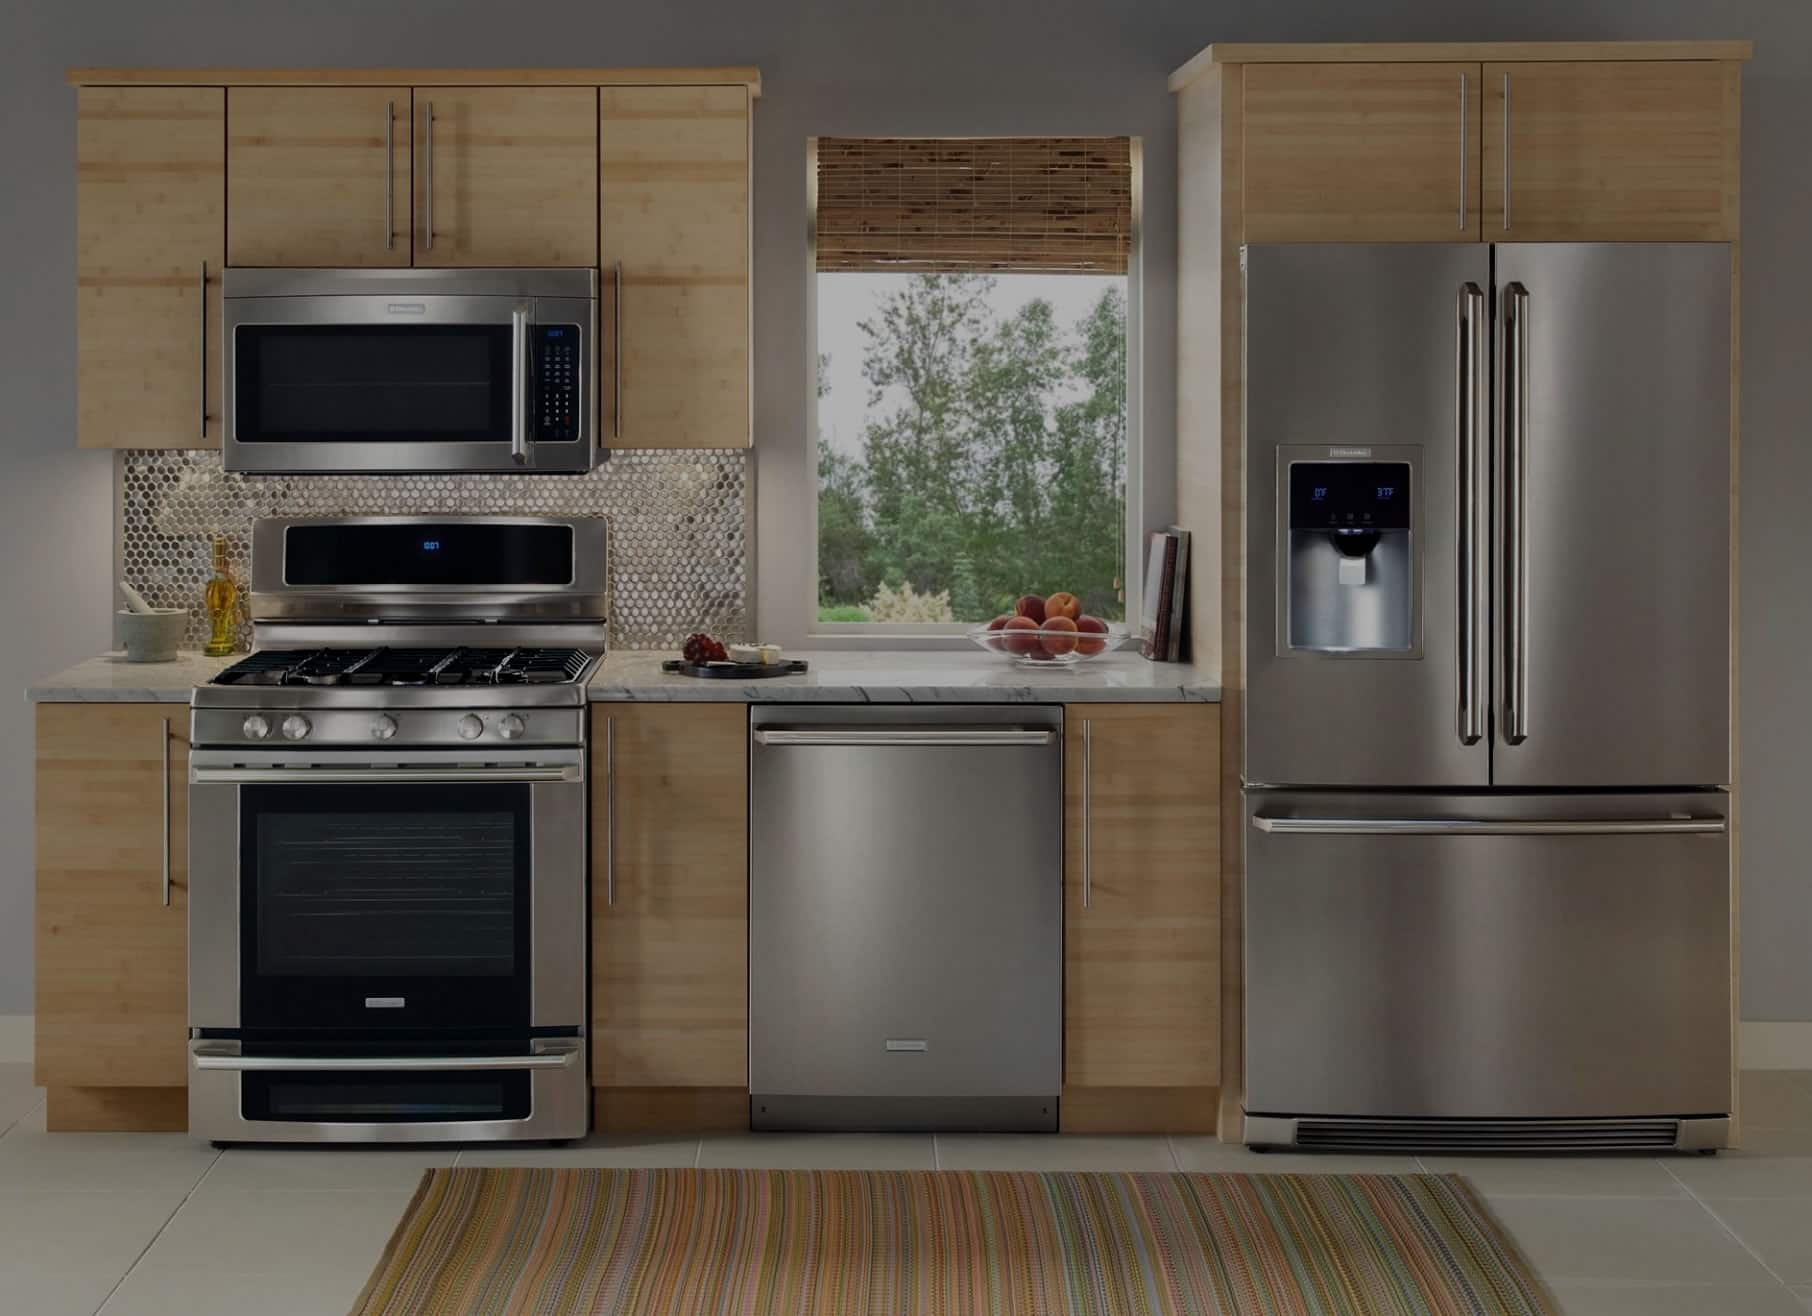 kitchen appliances pay monthly ashley furniture table and chairs what is the best home warranty company choice